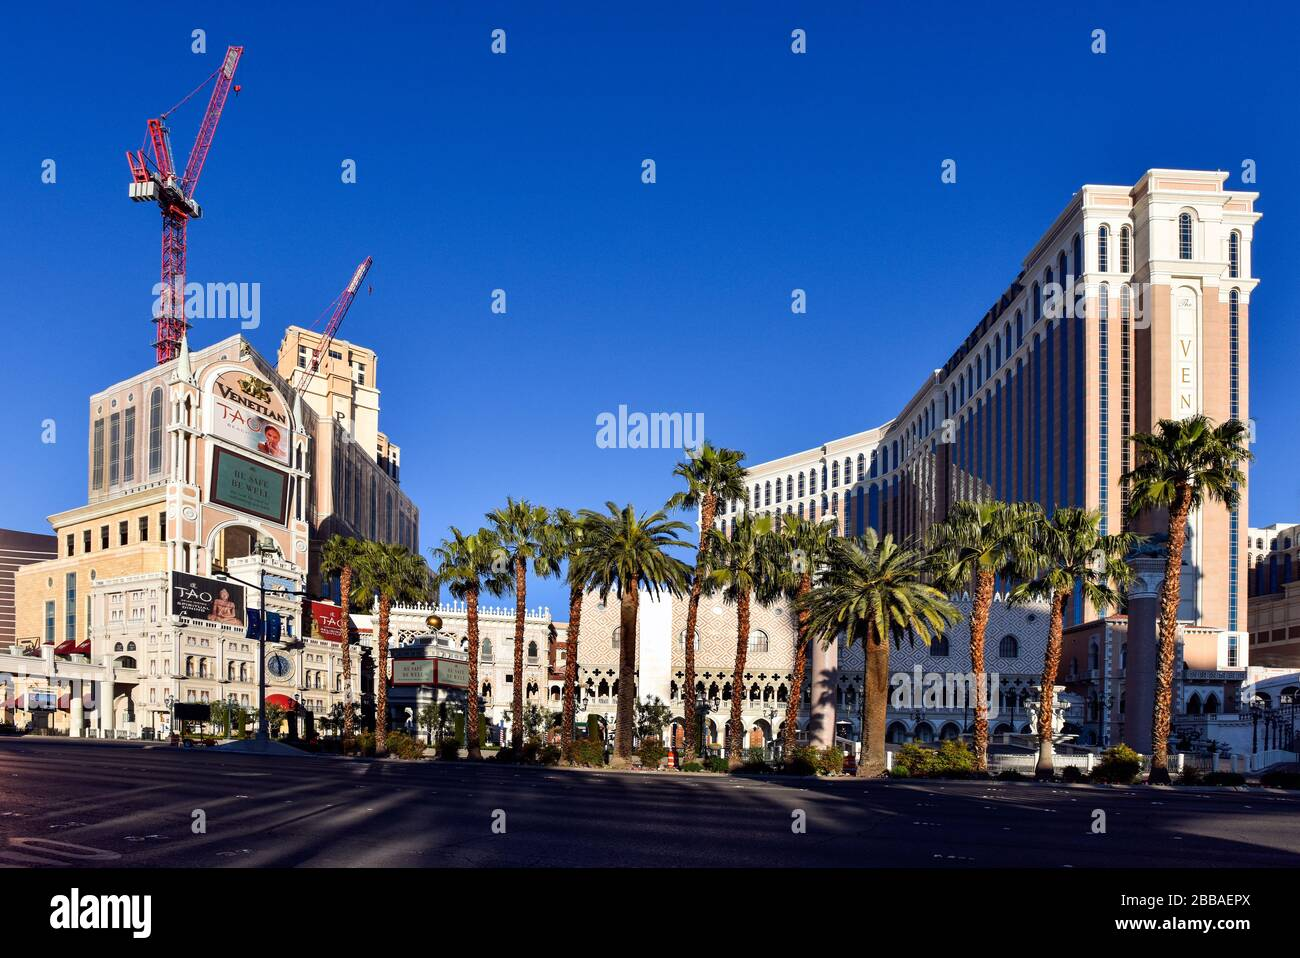 One week into the Las Vegas shut down due to Coronavirus, the Strip is fairly empty. No people on the streets and everything is closed. Stock Photo